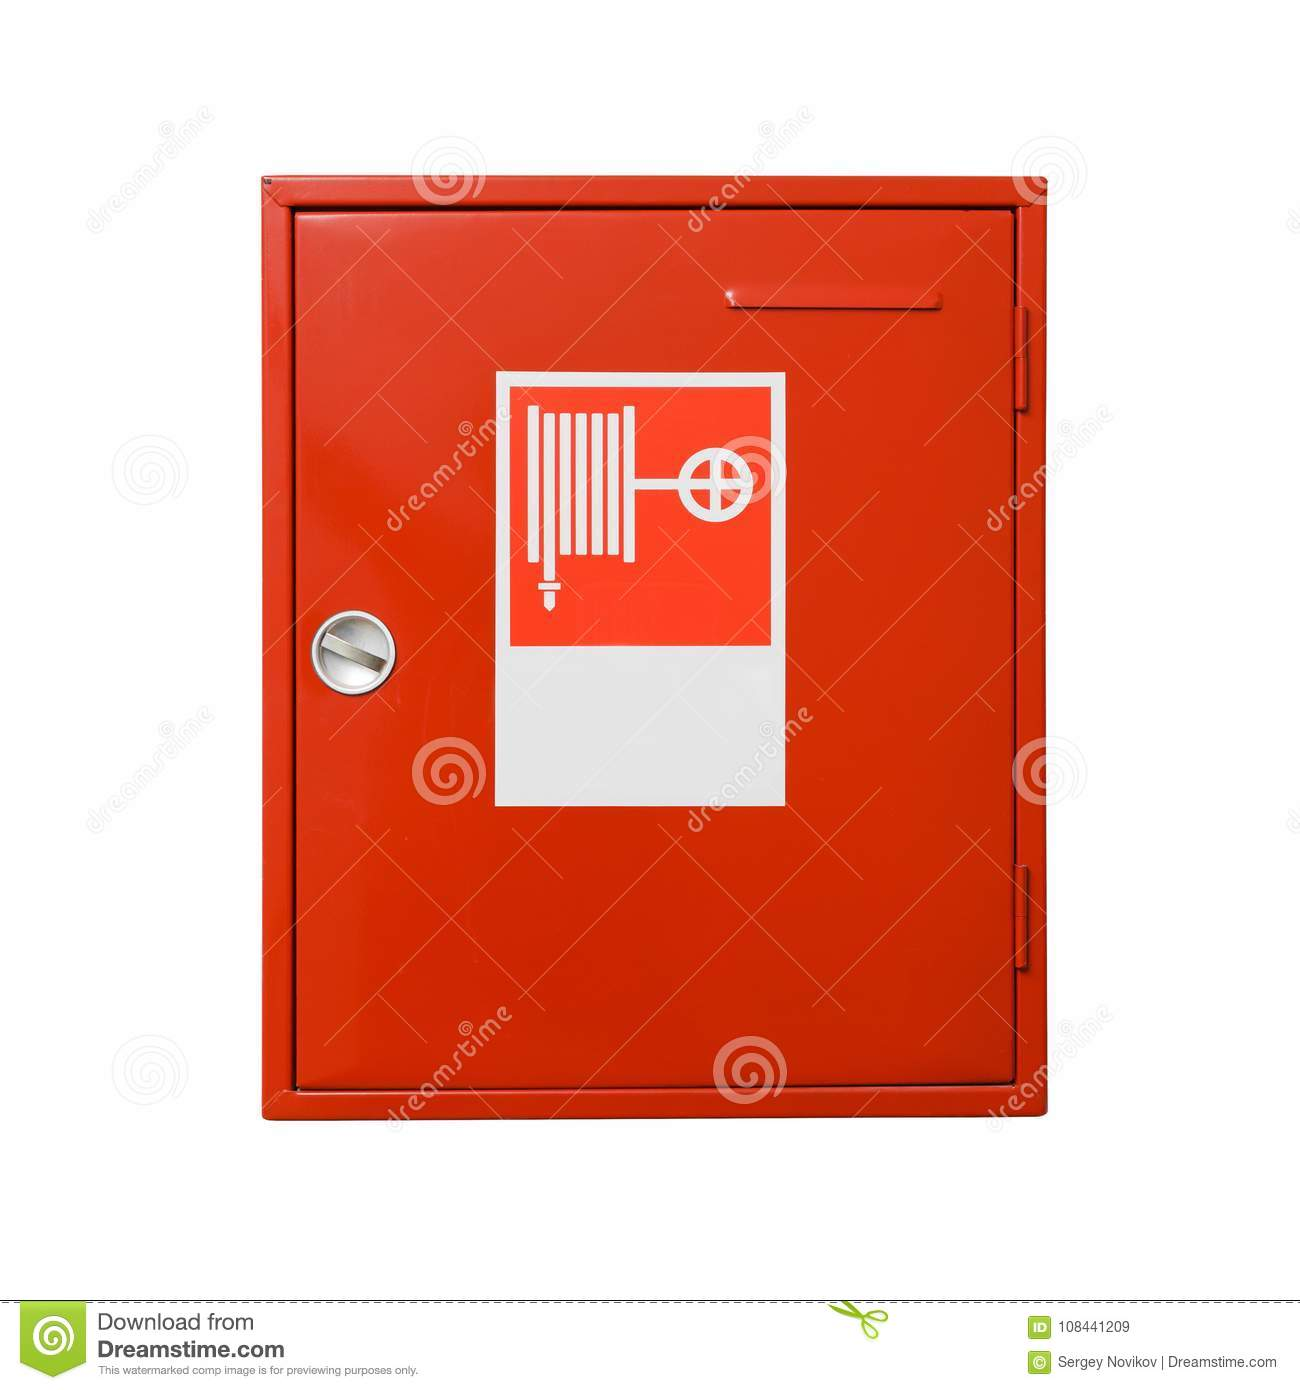 Fire hose cabinet isolated on white background. Include clipping path